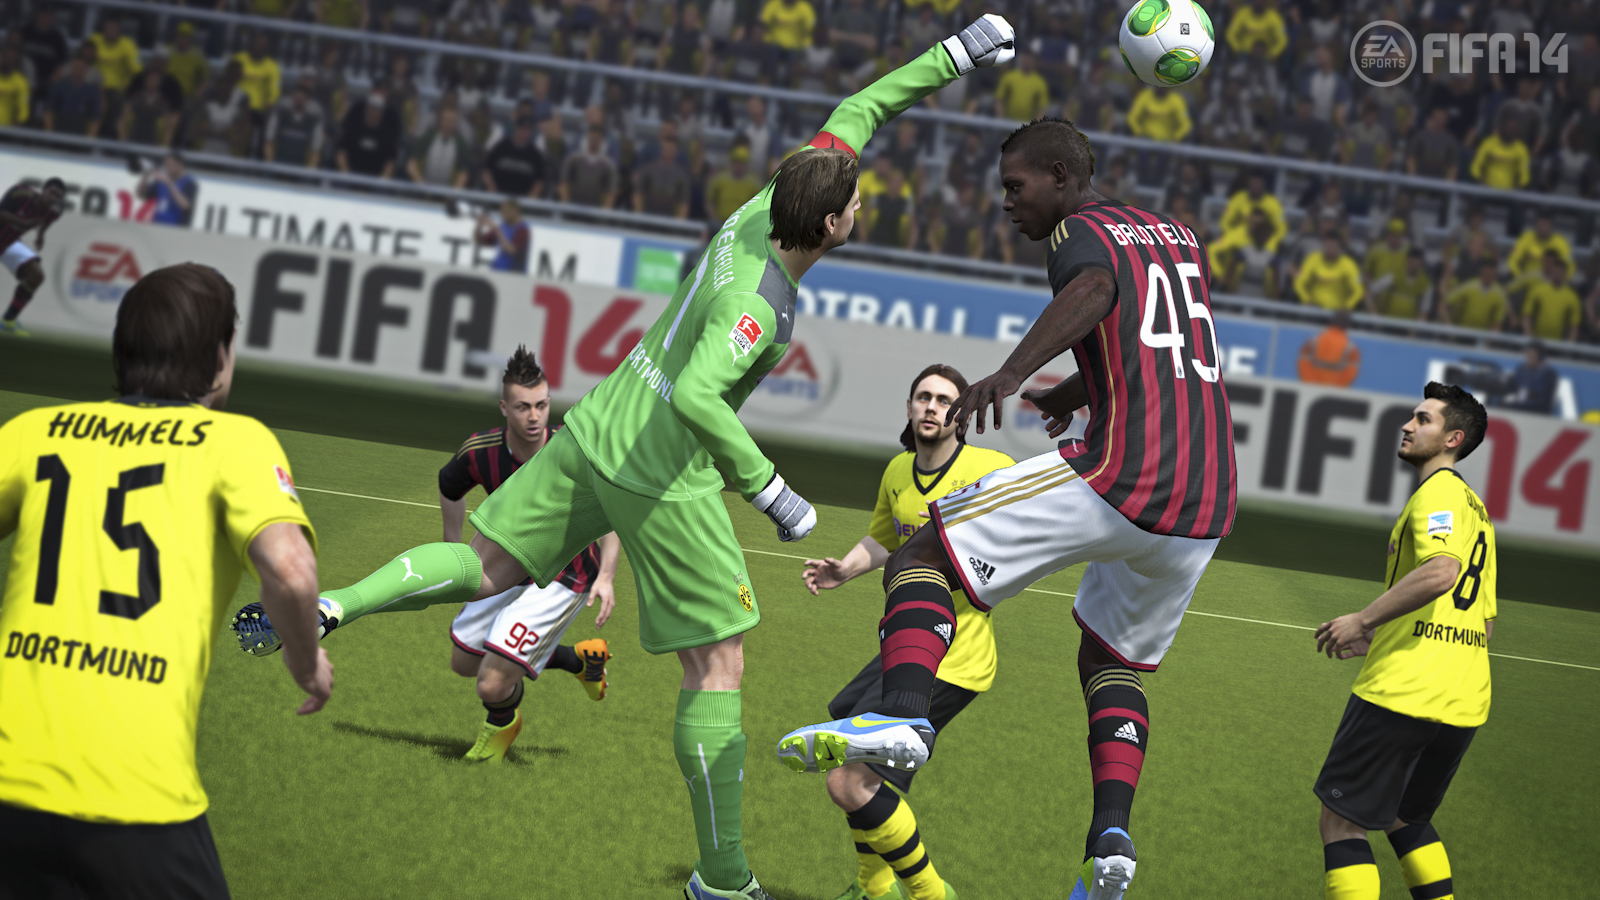 2013-09-23-fifa14_pc_clearance_wm.jpg